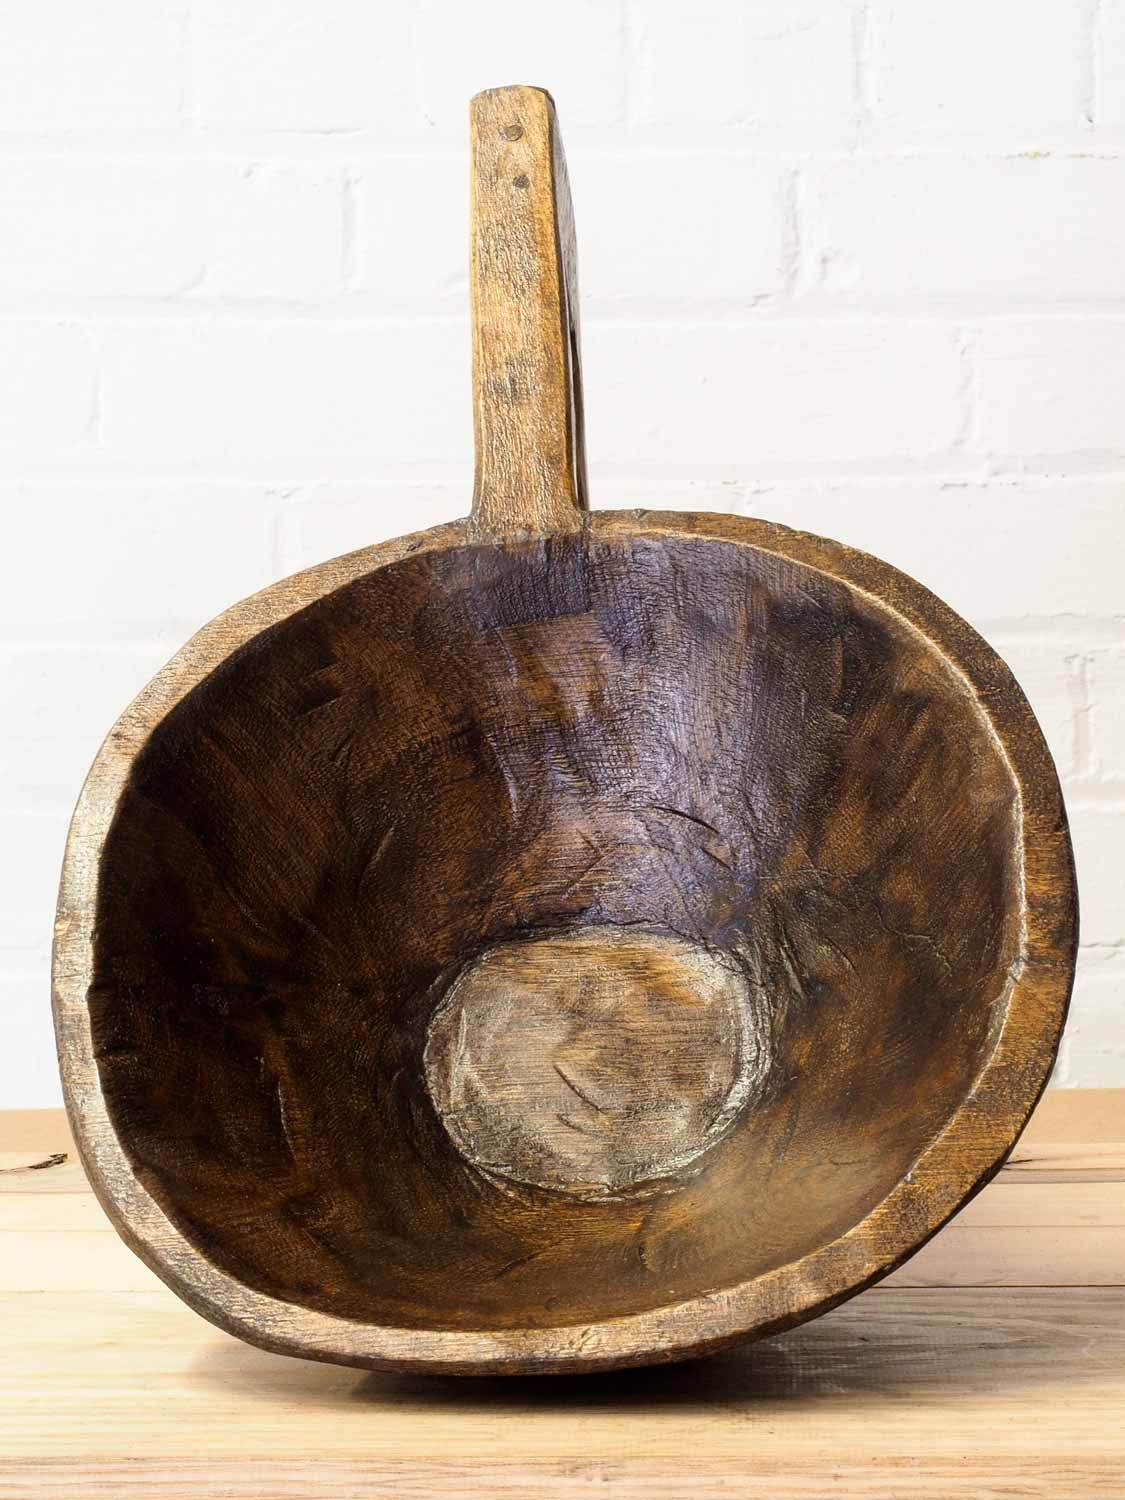 Long Handled Wooden Bowl from India